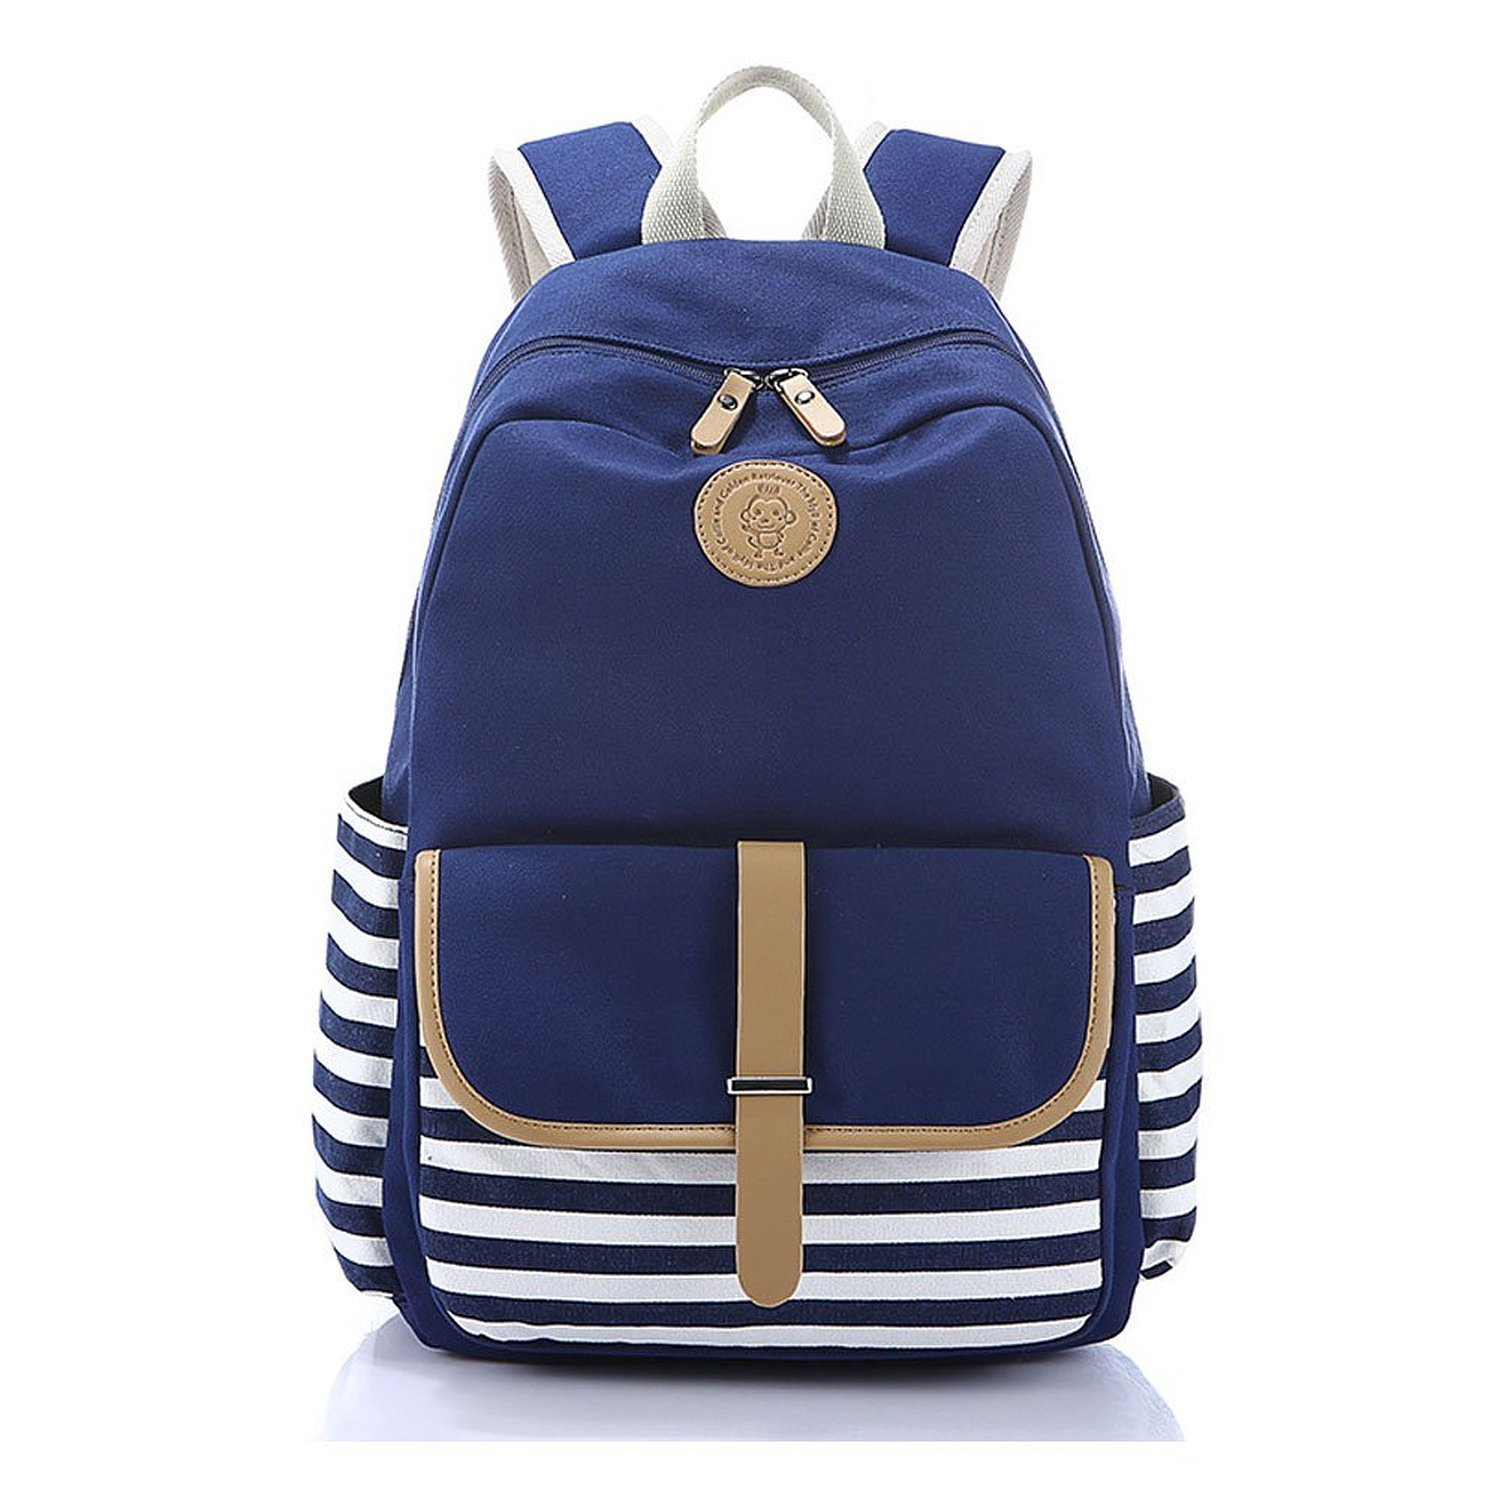 Abshoo Causal Travel Canvas Rucksack Backpacks for Girls School Bookbags (Navy)